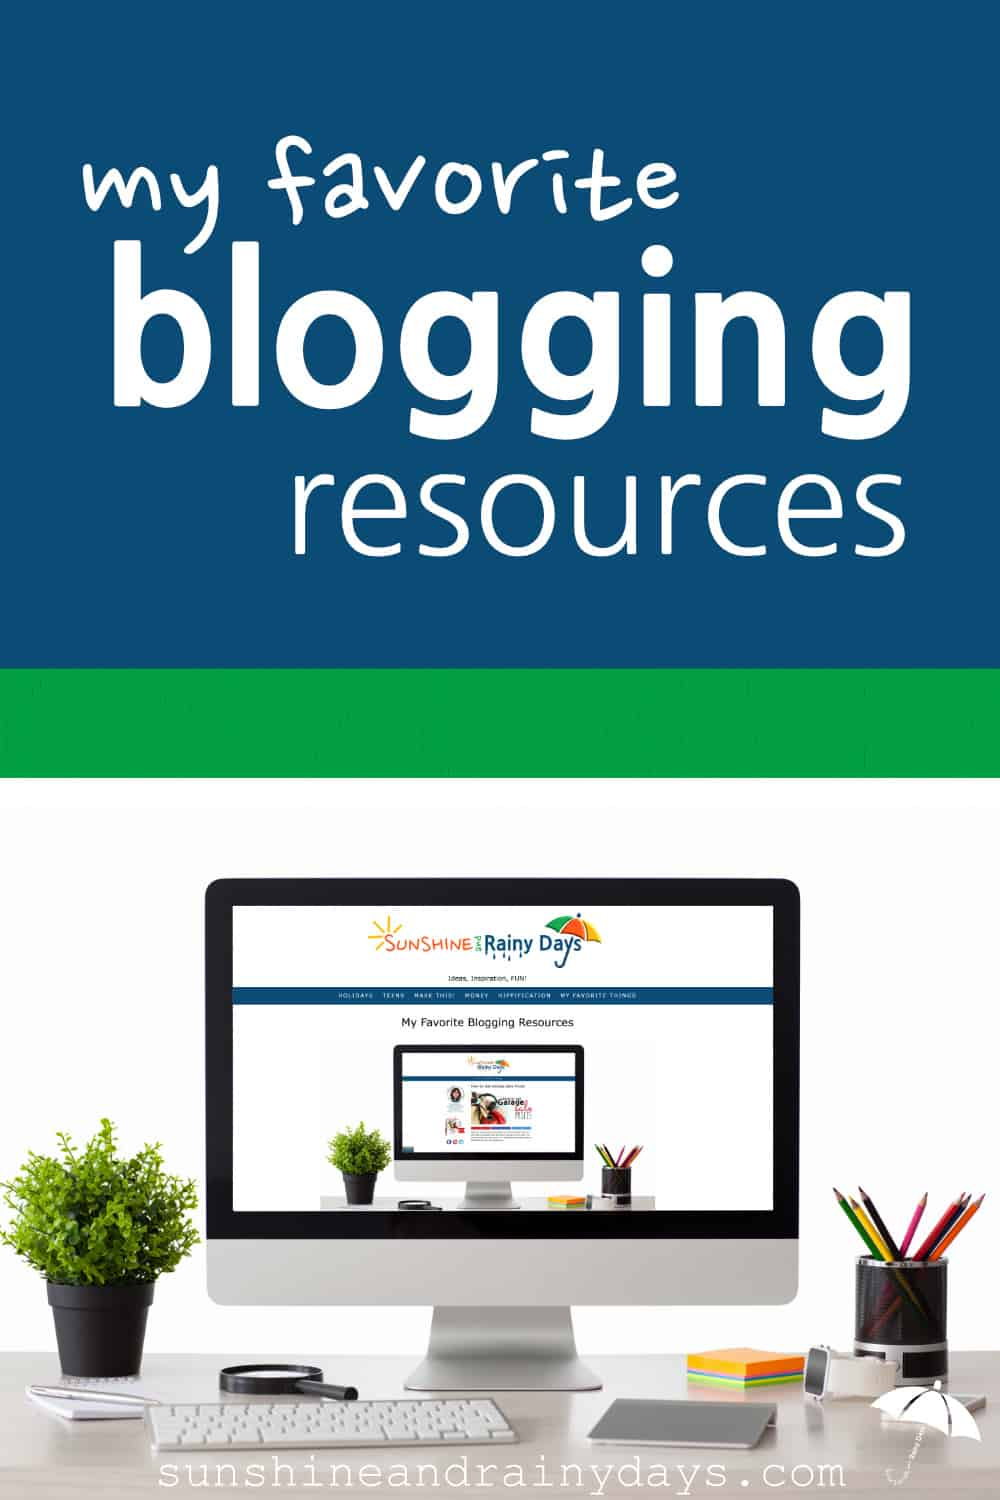 Have you thought about starting a blog? Where do you start? What programs do you use? Here I list tried and true blogging resources to help you on your way!